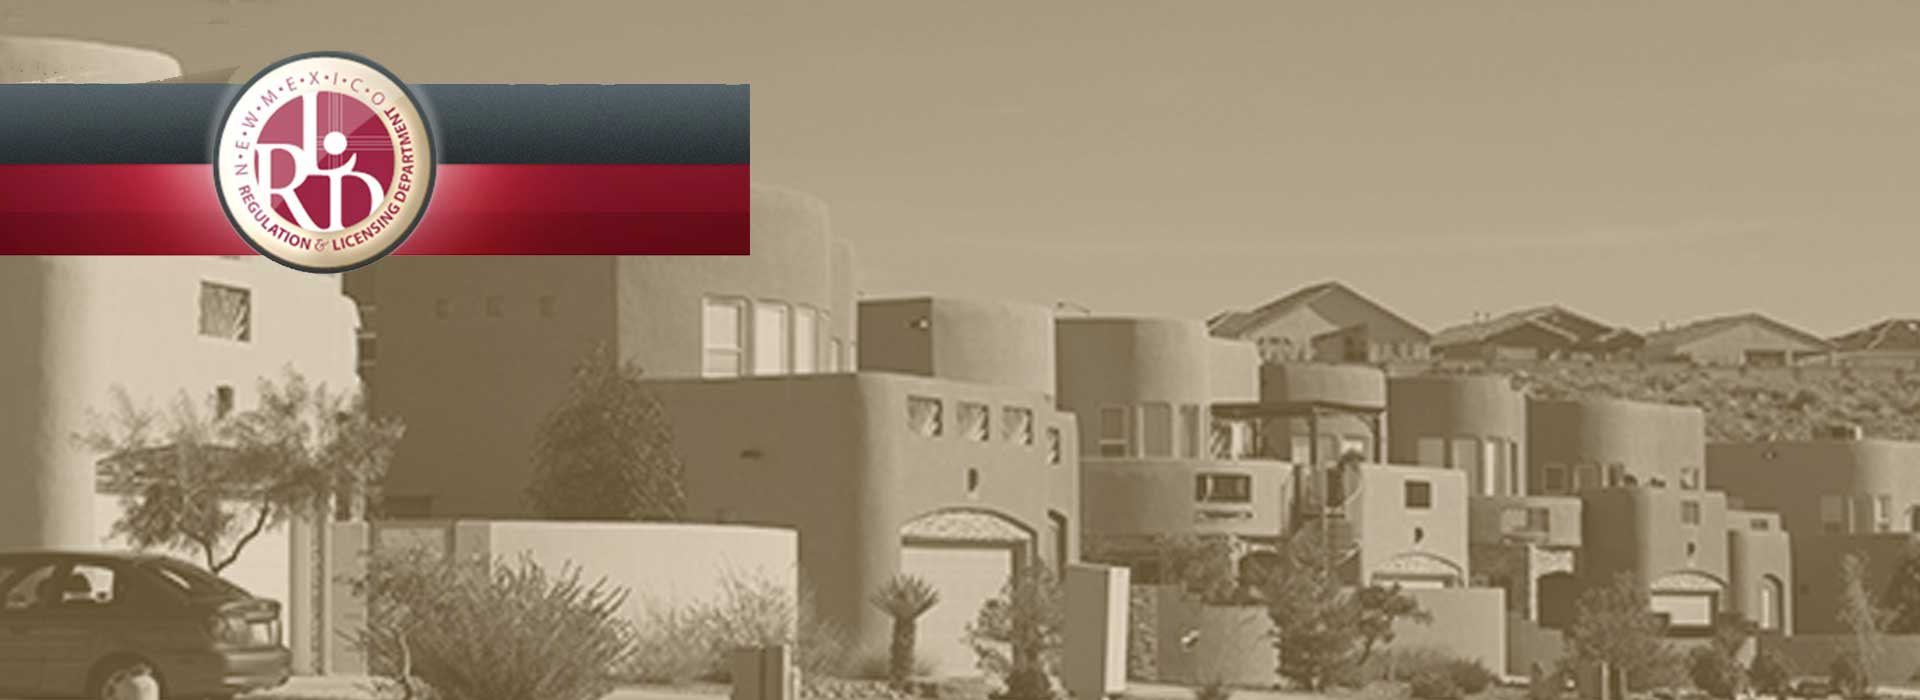 Important Update from the New Mexico Real Estate Commission